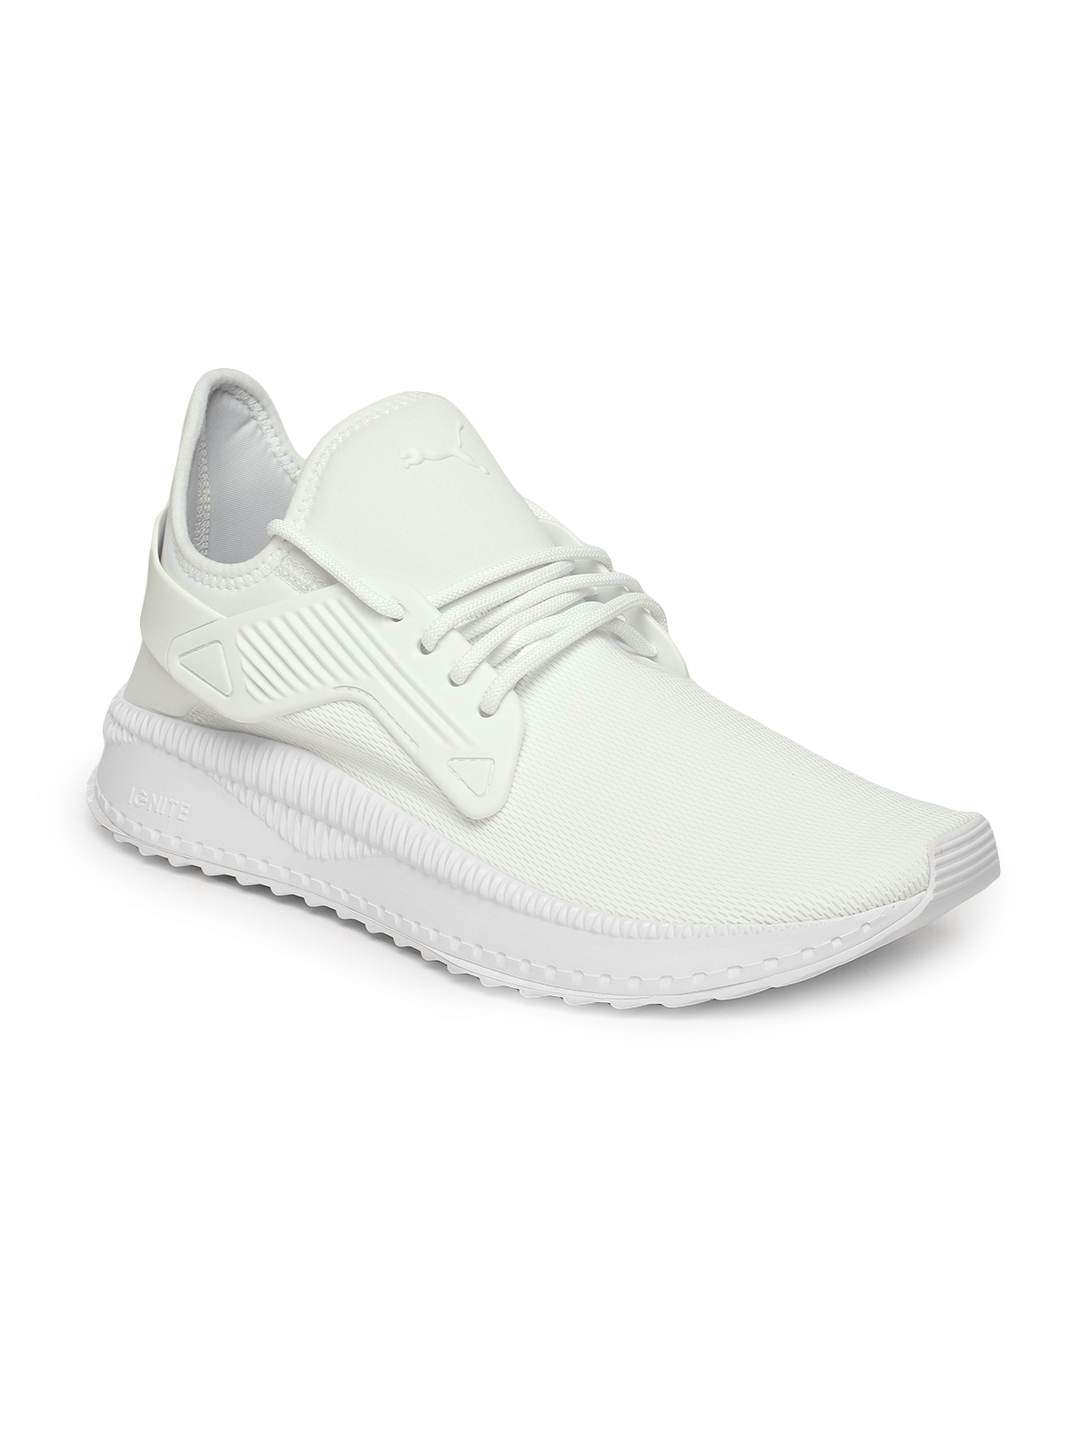 choose authentic limited style newest style Puma Men White TSUGI Cage Sneakers